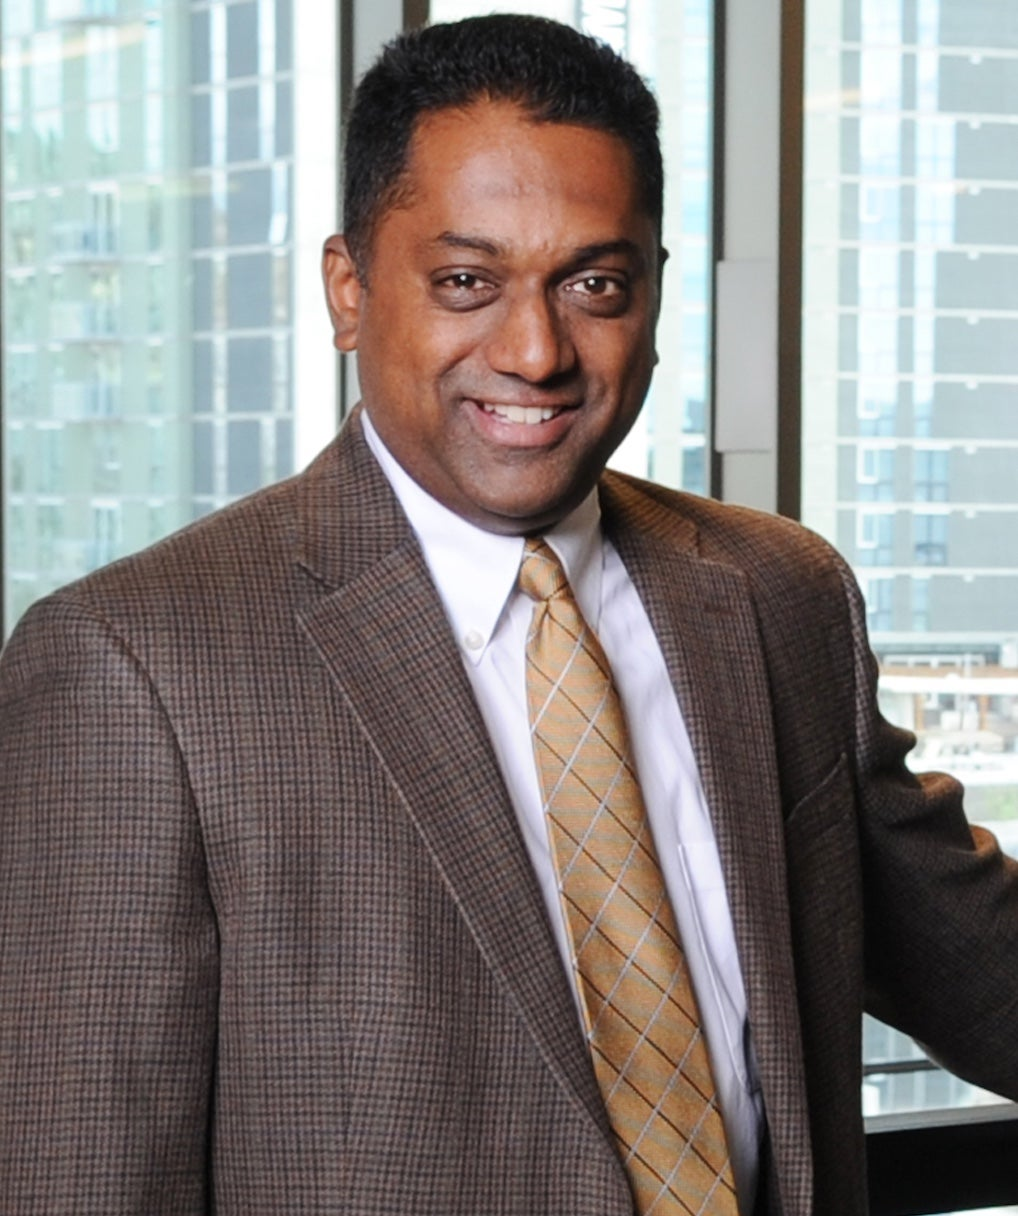 Samuel T. Ariaratnam, PhD (University of Illinois at Urbana-Champaign), P.E., P.Eng, F.ASCE